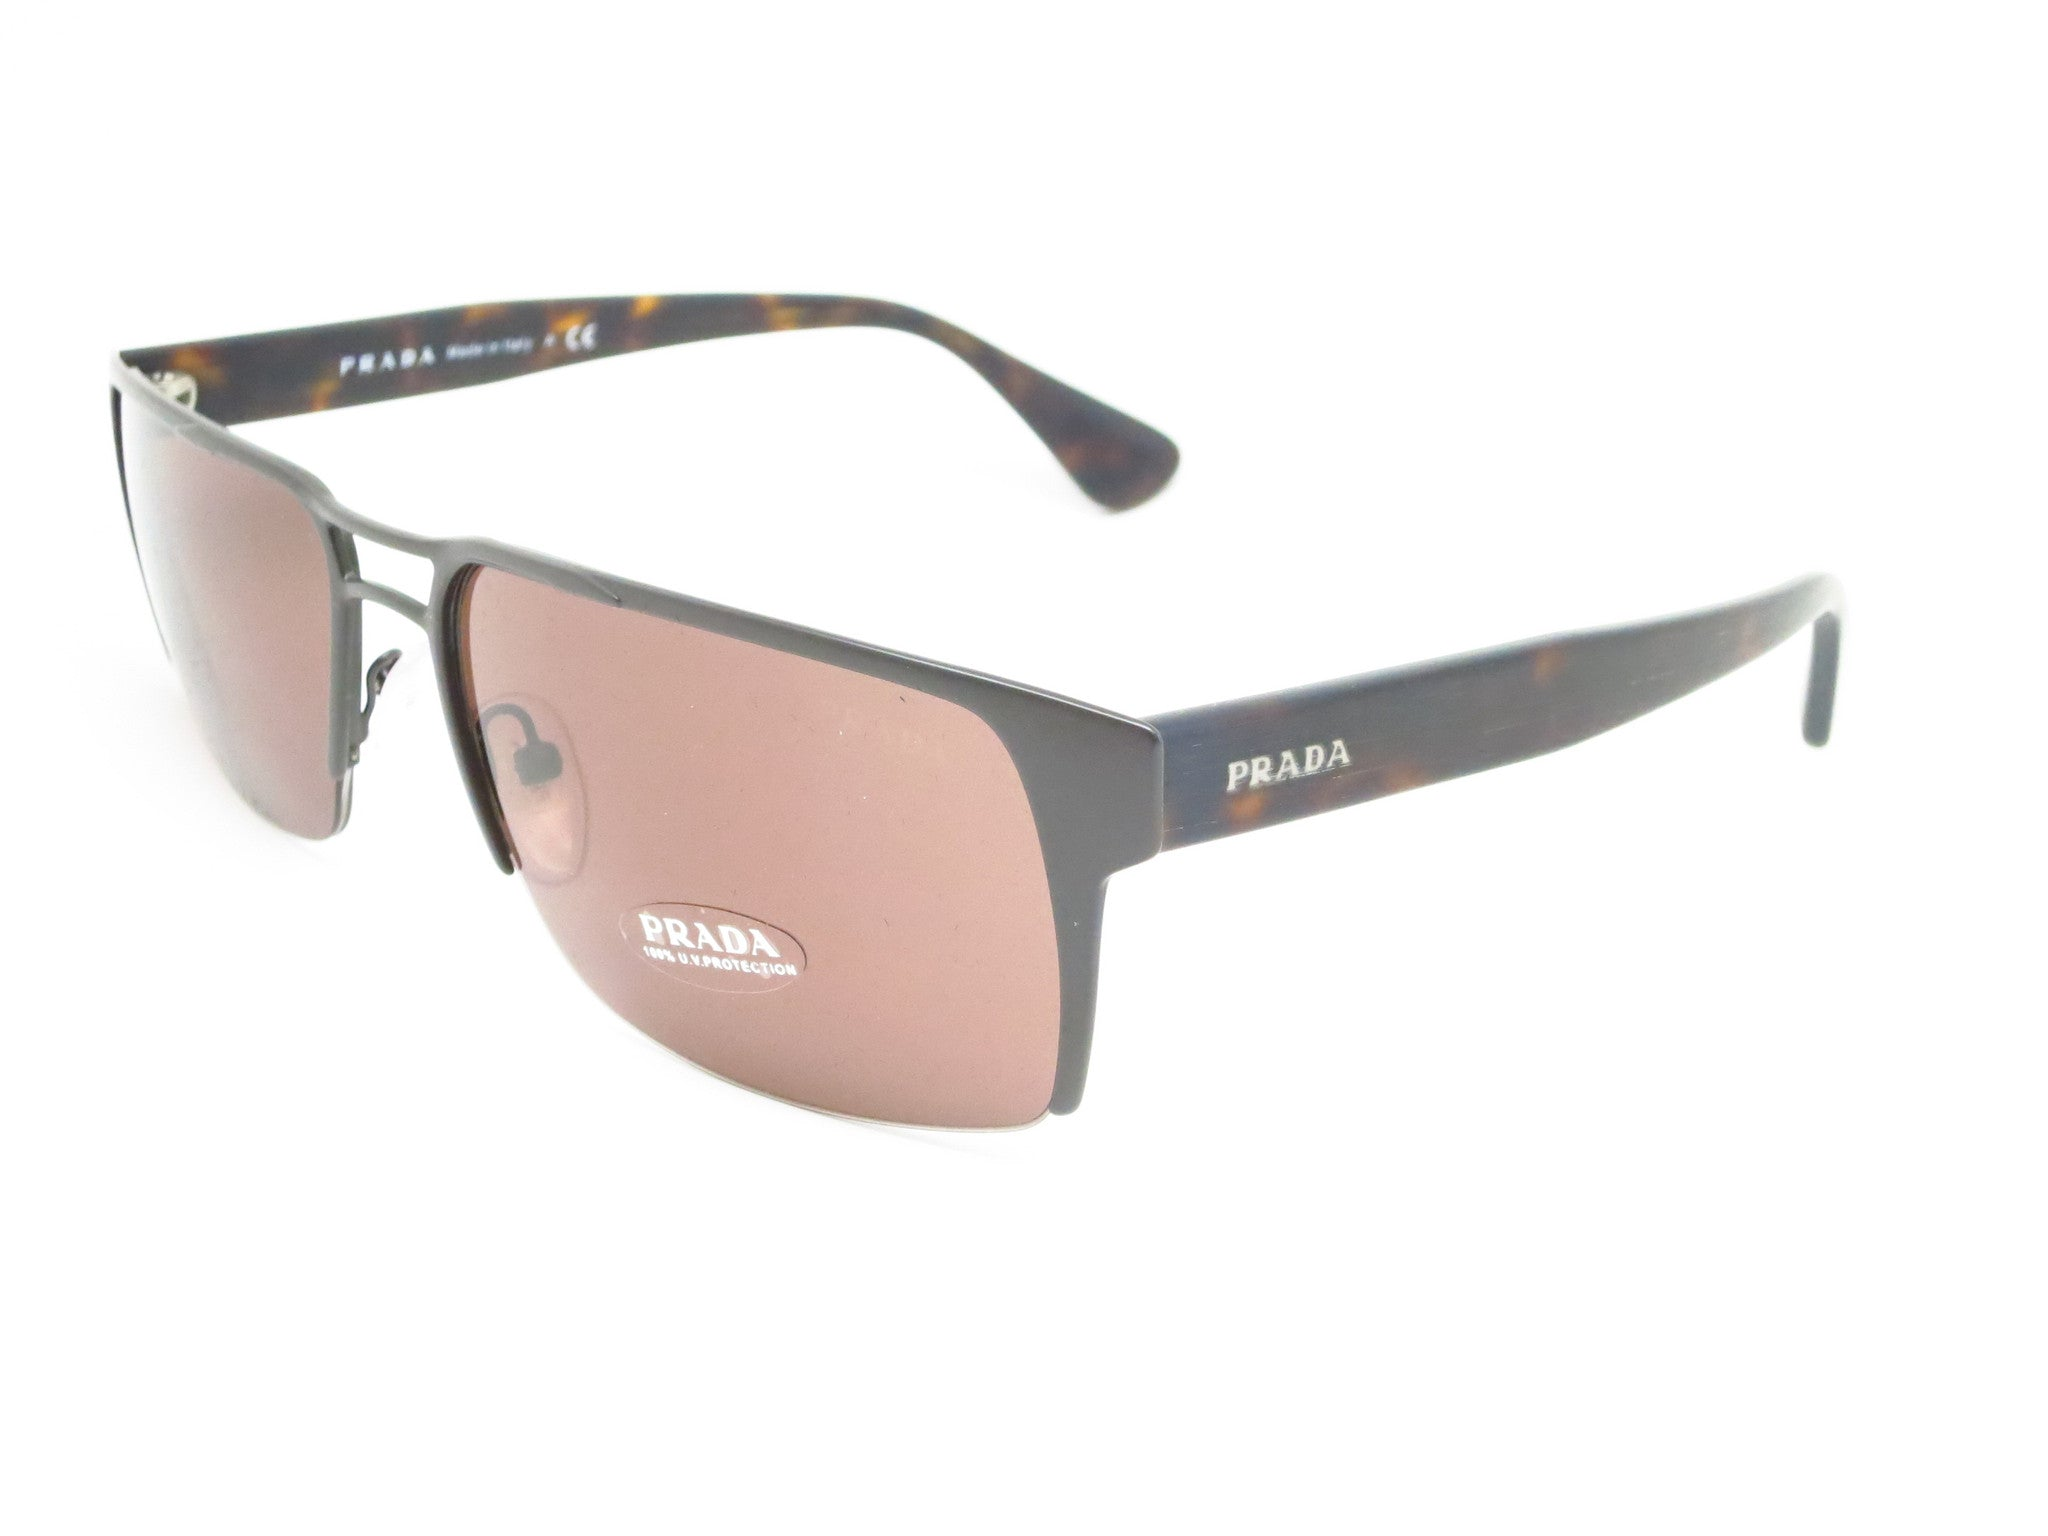 c8d0042f54f42 Prada SPR 52R LAH-8C1 Matte Brown Sunglasses - Eye Heart Shades - Prada ...